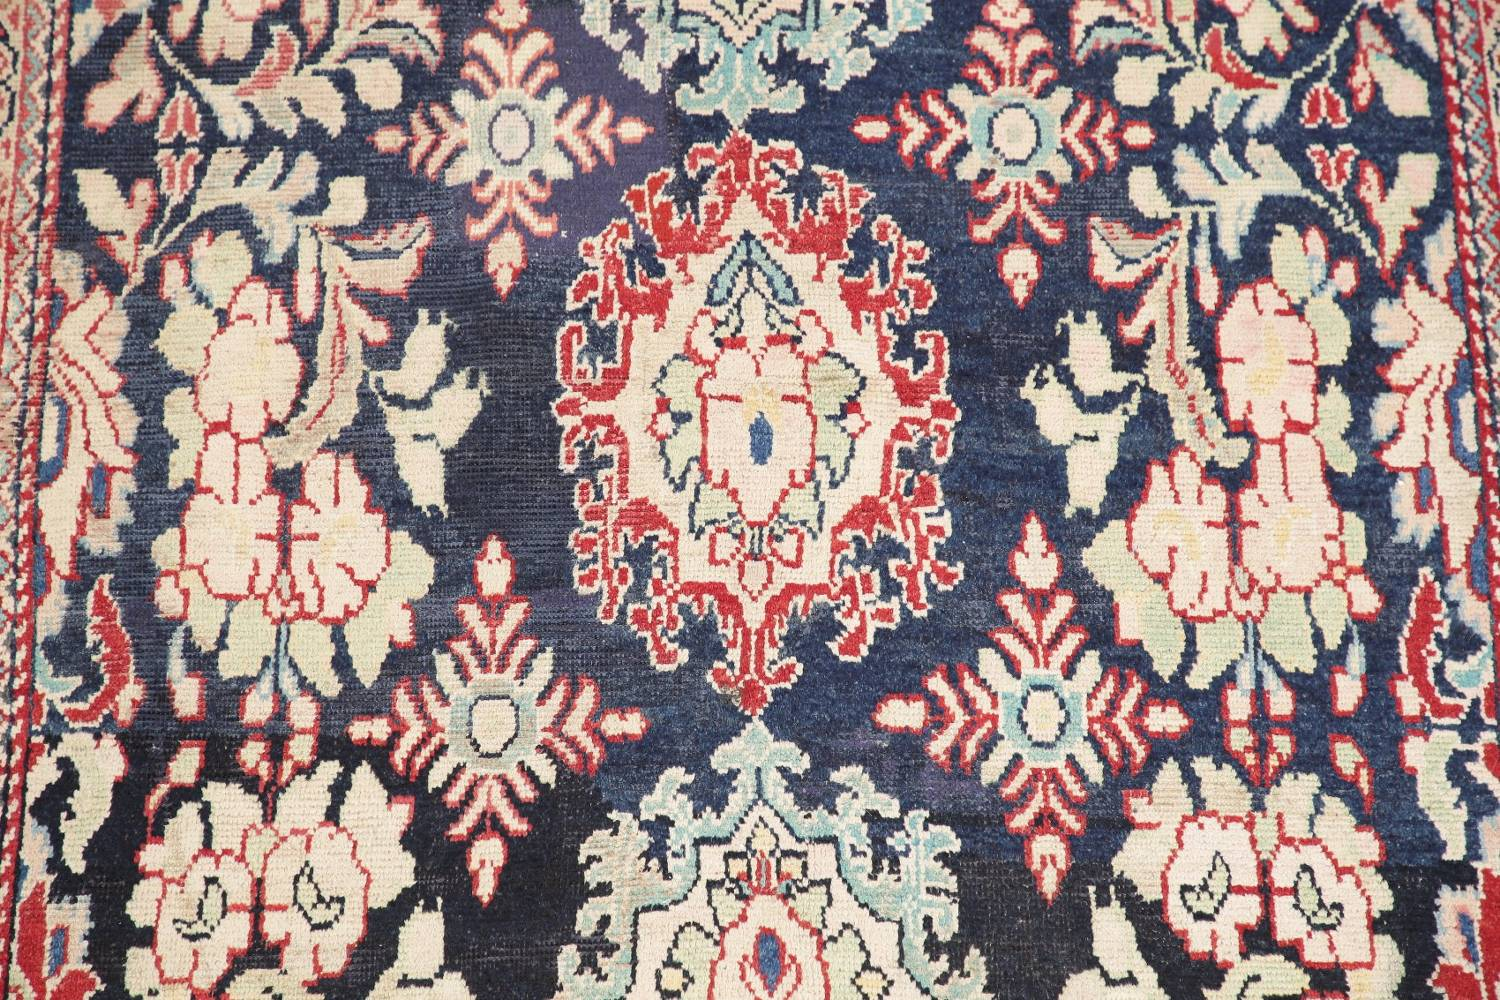 Antique Navy Blue Sultanabad Persian Runner Rug 5x9 image 4